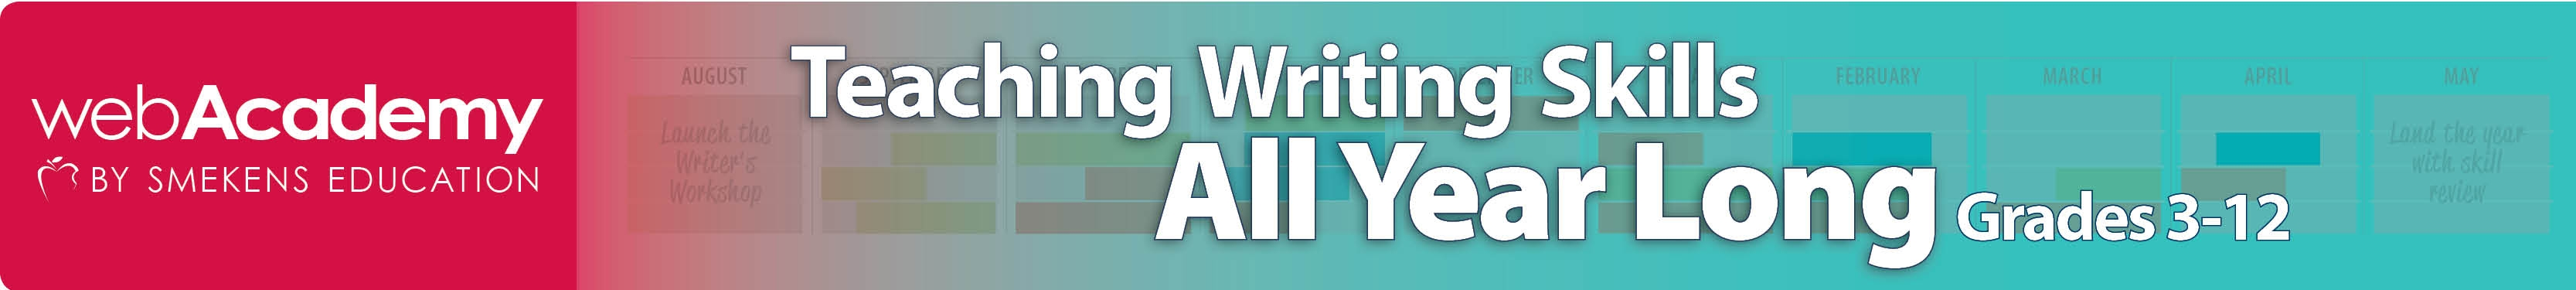 Teaching Writing Skills All Year Long Grades 3-12